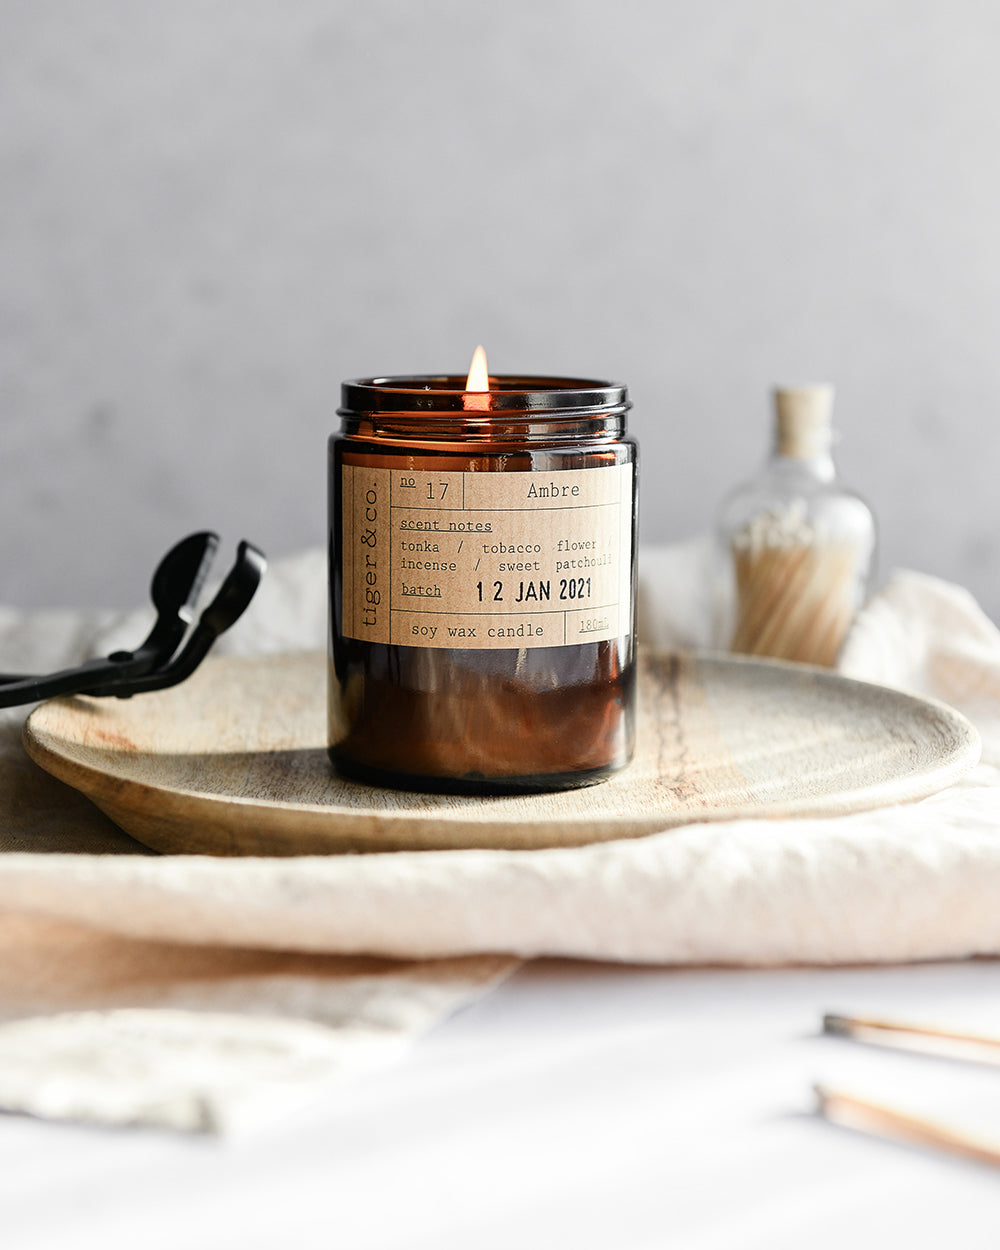 Ambre Candle Jar